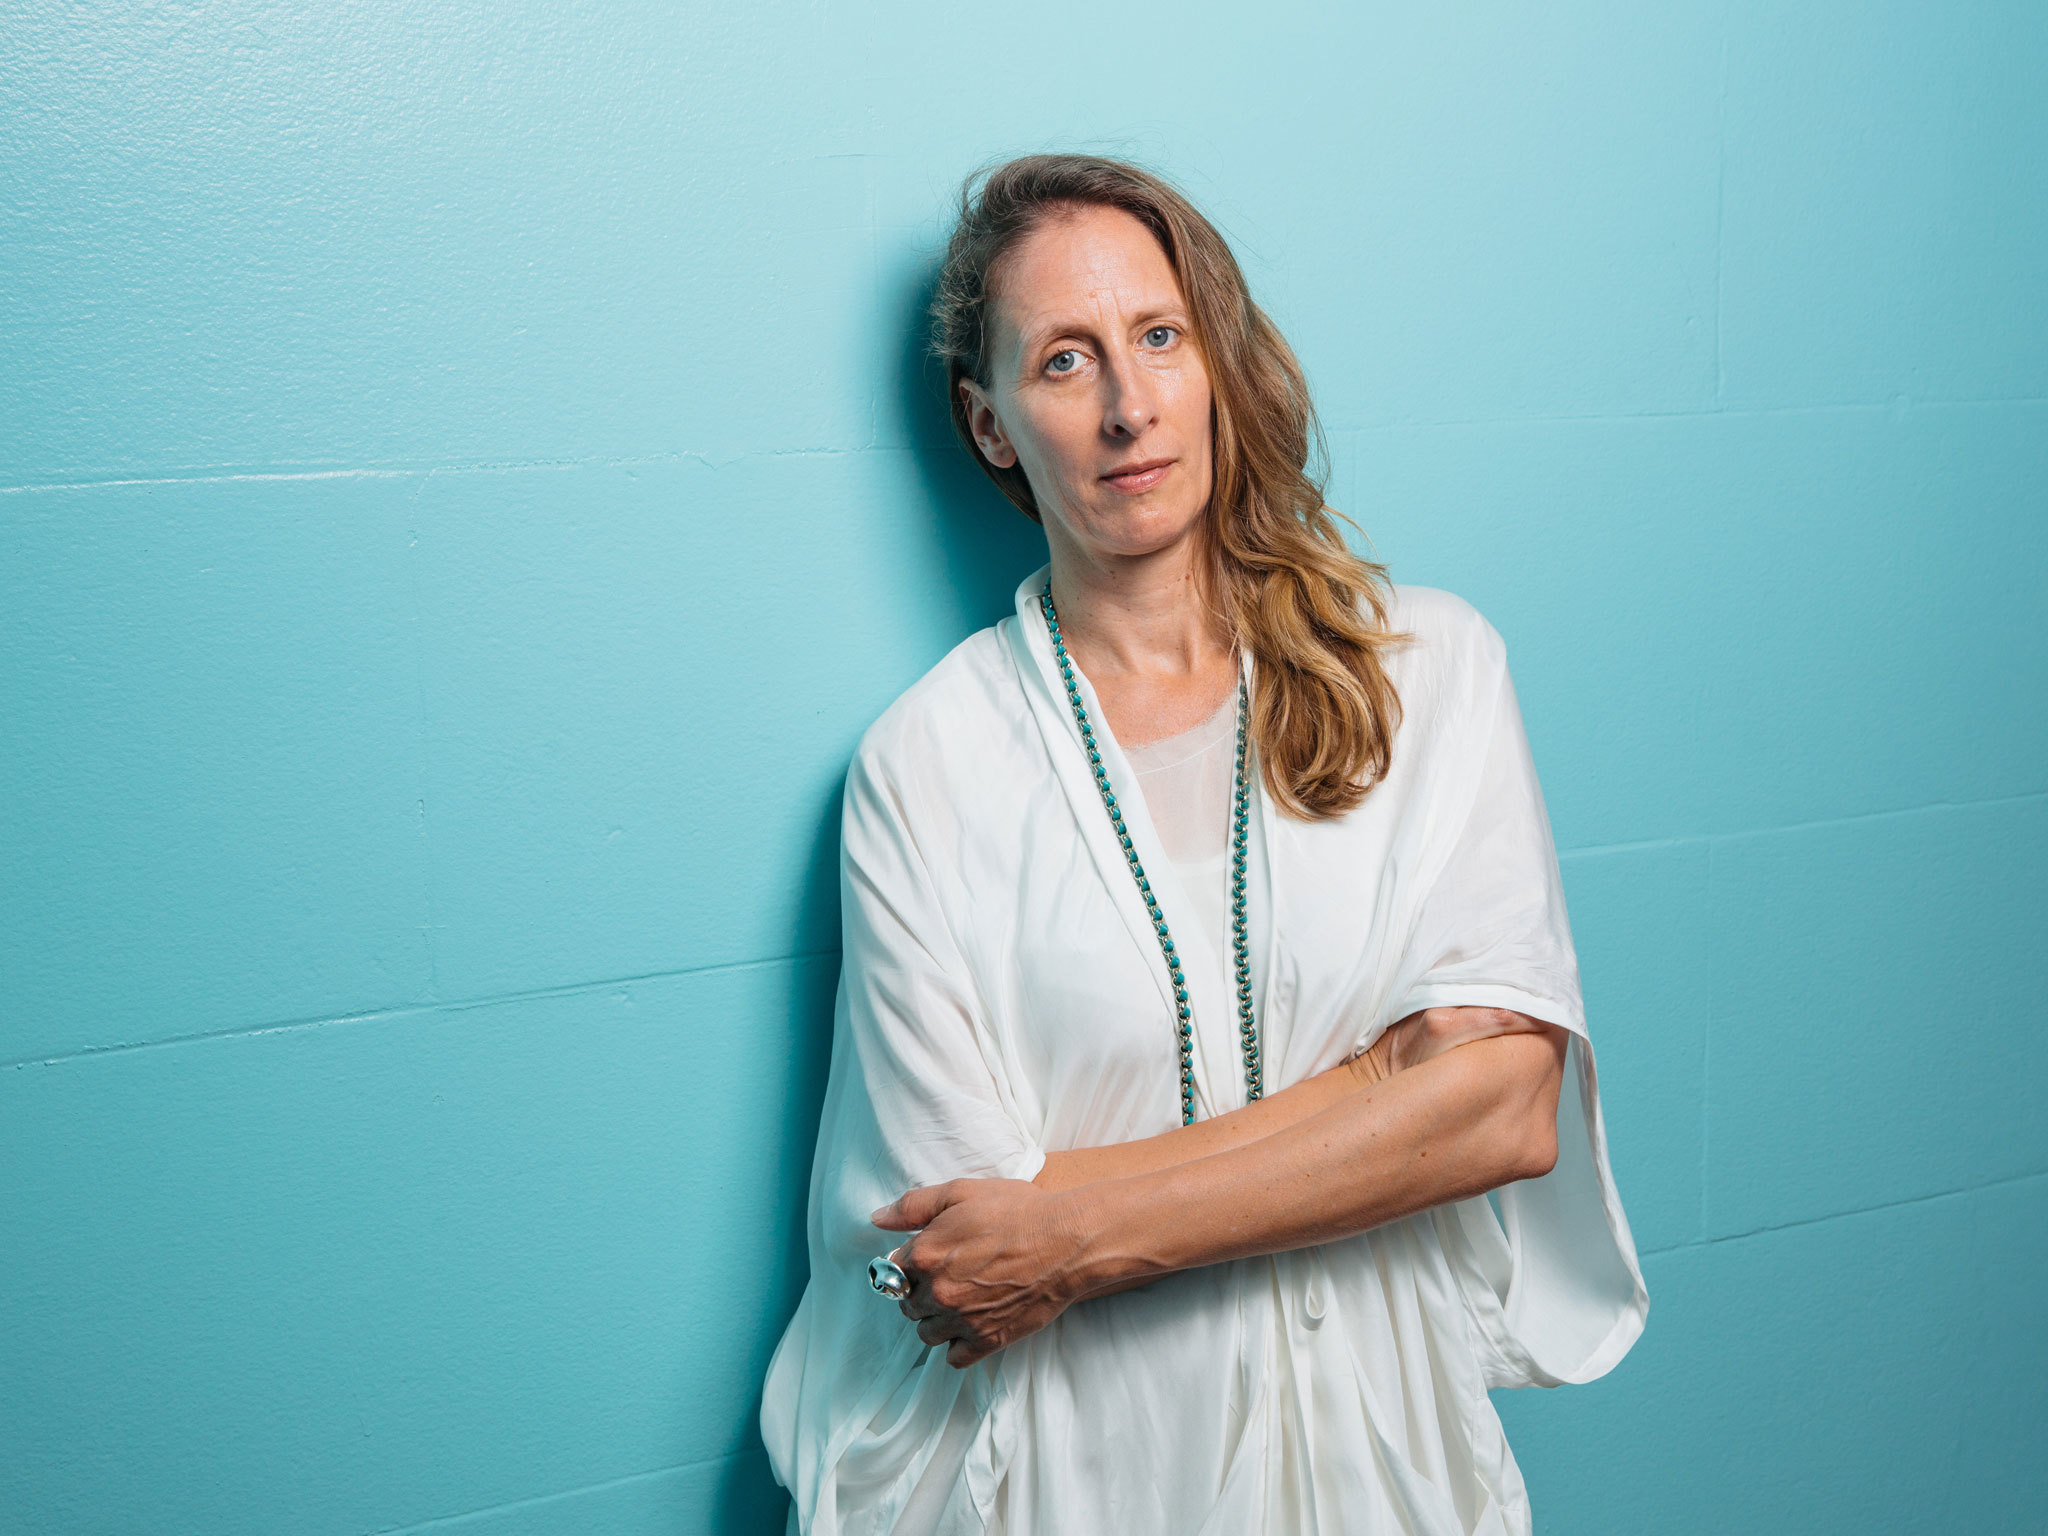 Image of Biennale of Sydney curator Stephanie Rosenthal with her hair out and wearing loose-fitting white robes, standing with her arms folded against the bright turquoise wall of Mortuary Station